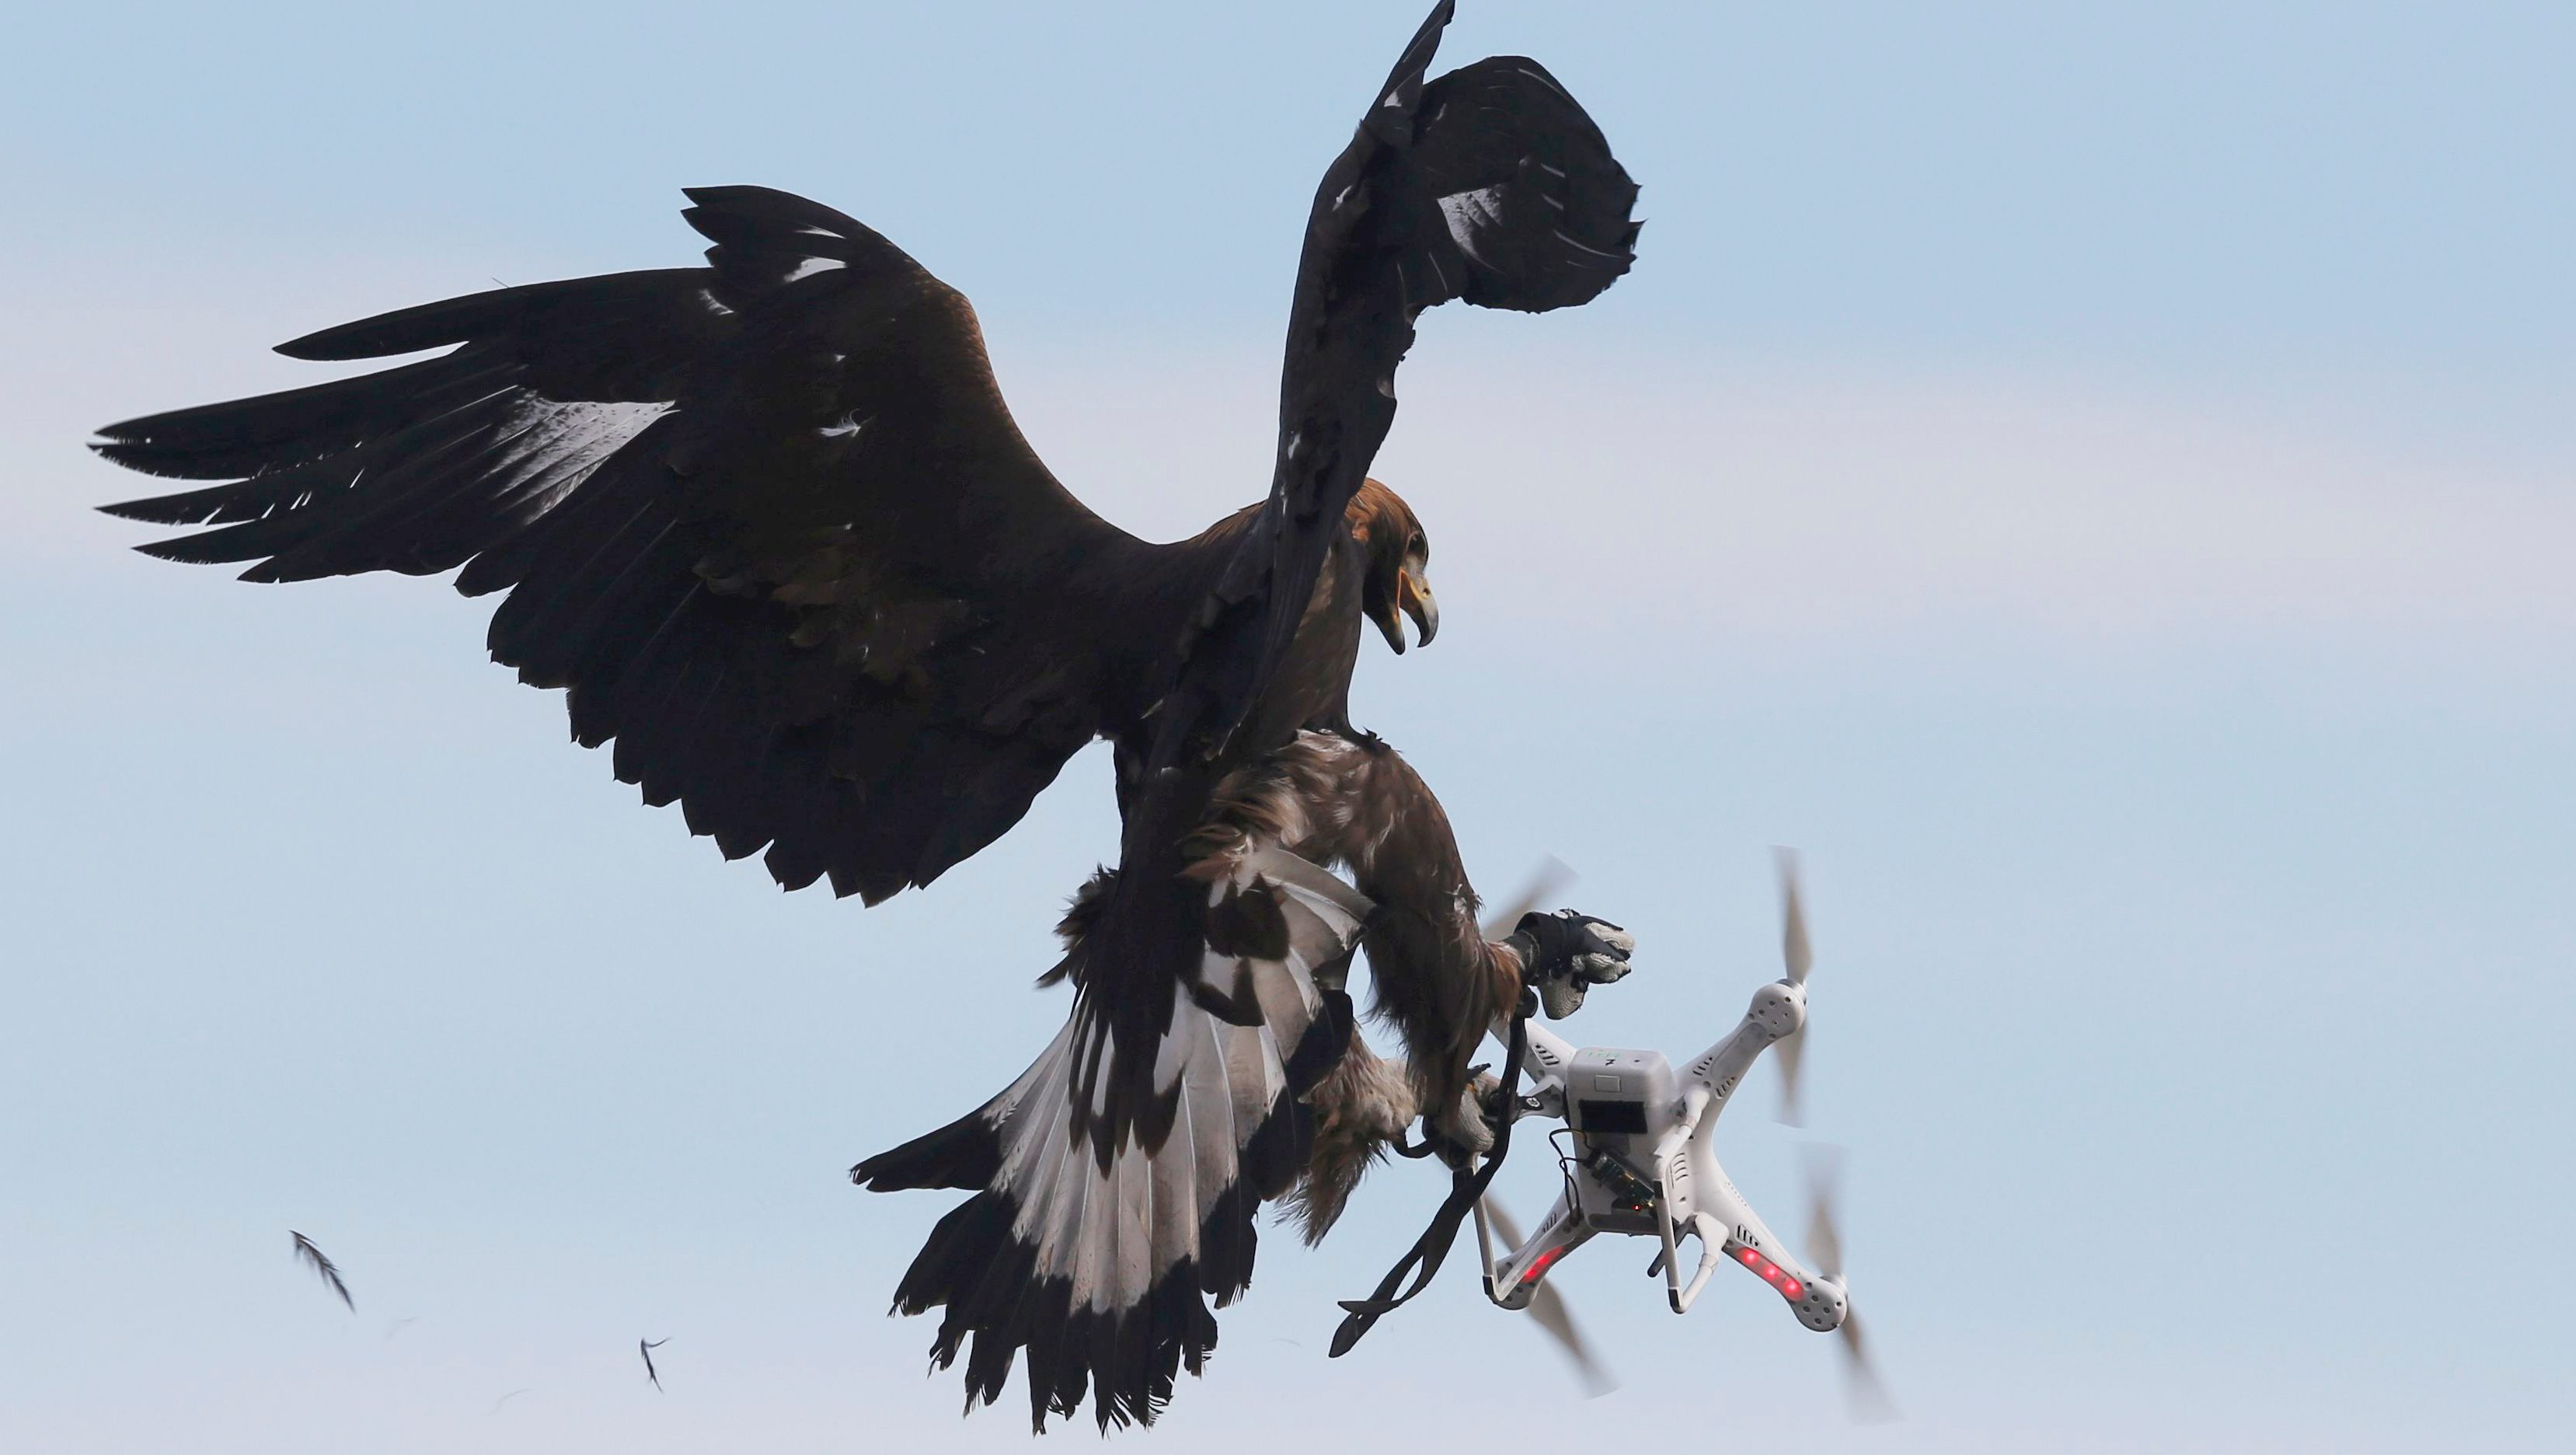 A golden eagle grabs a flying drone during a military training exercise at Mont-de-Marsan French Air Force base, Southwestern France, February 10, 2017.   TPX IMAGES OF THE DAY - RC1D6E43E220